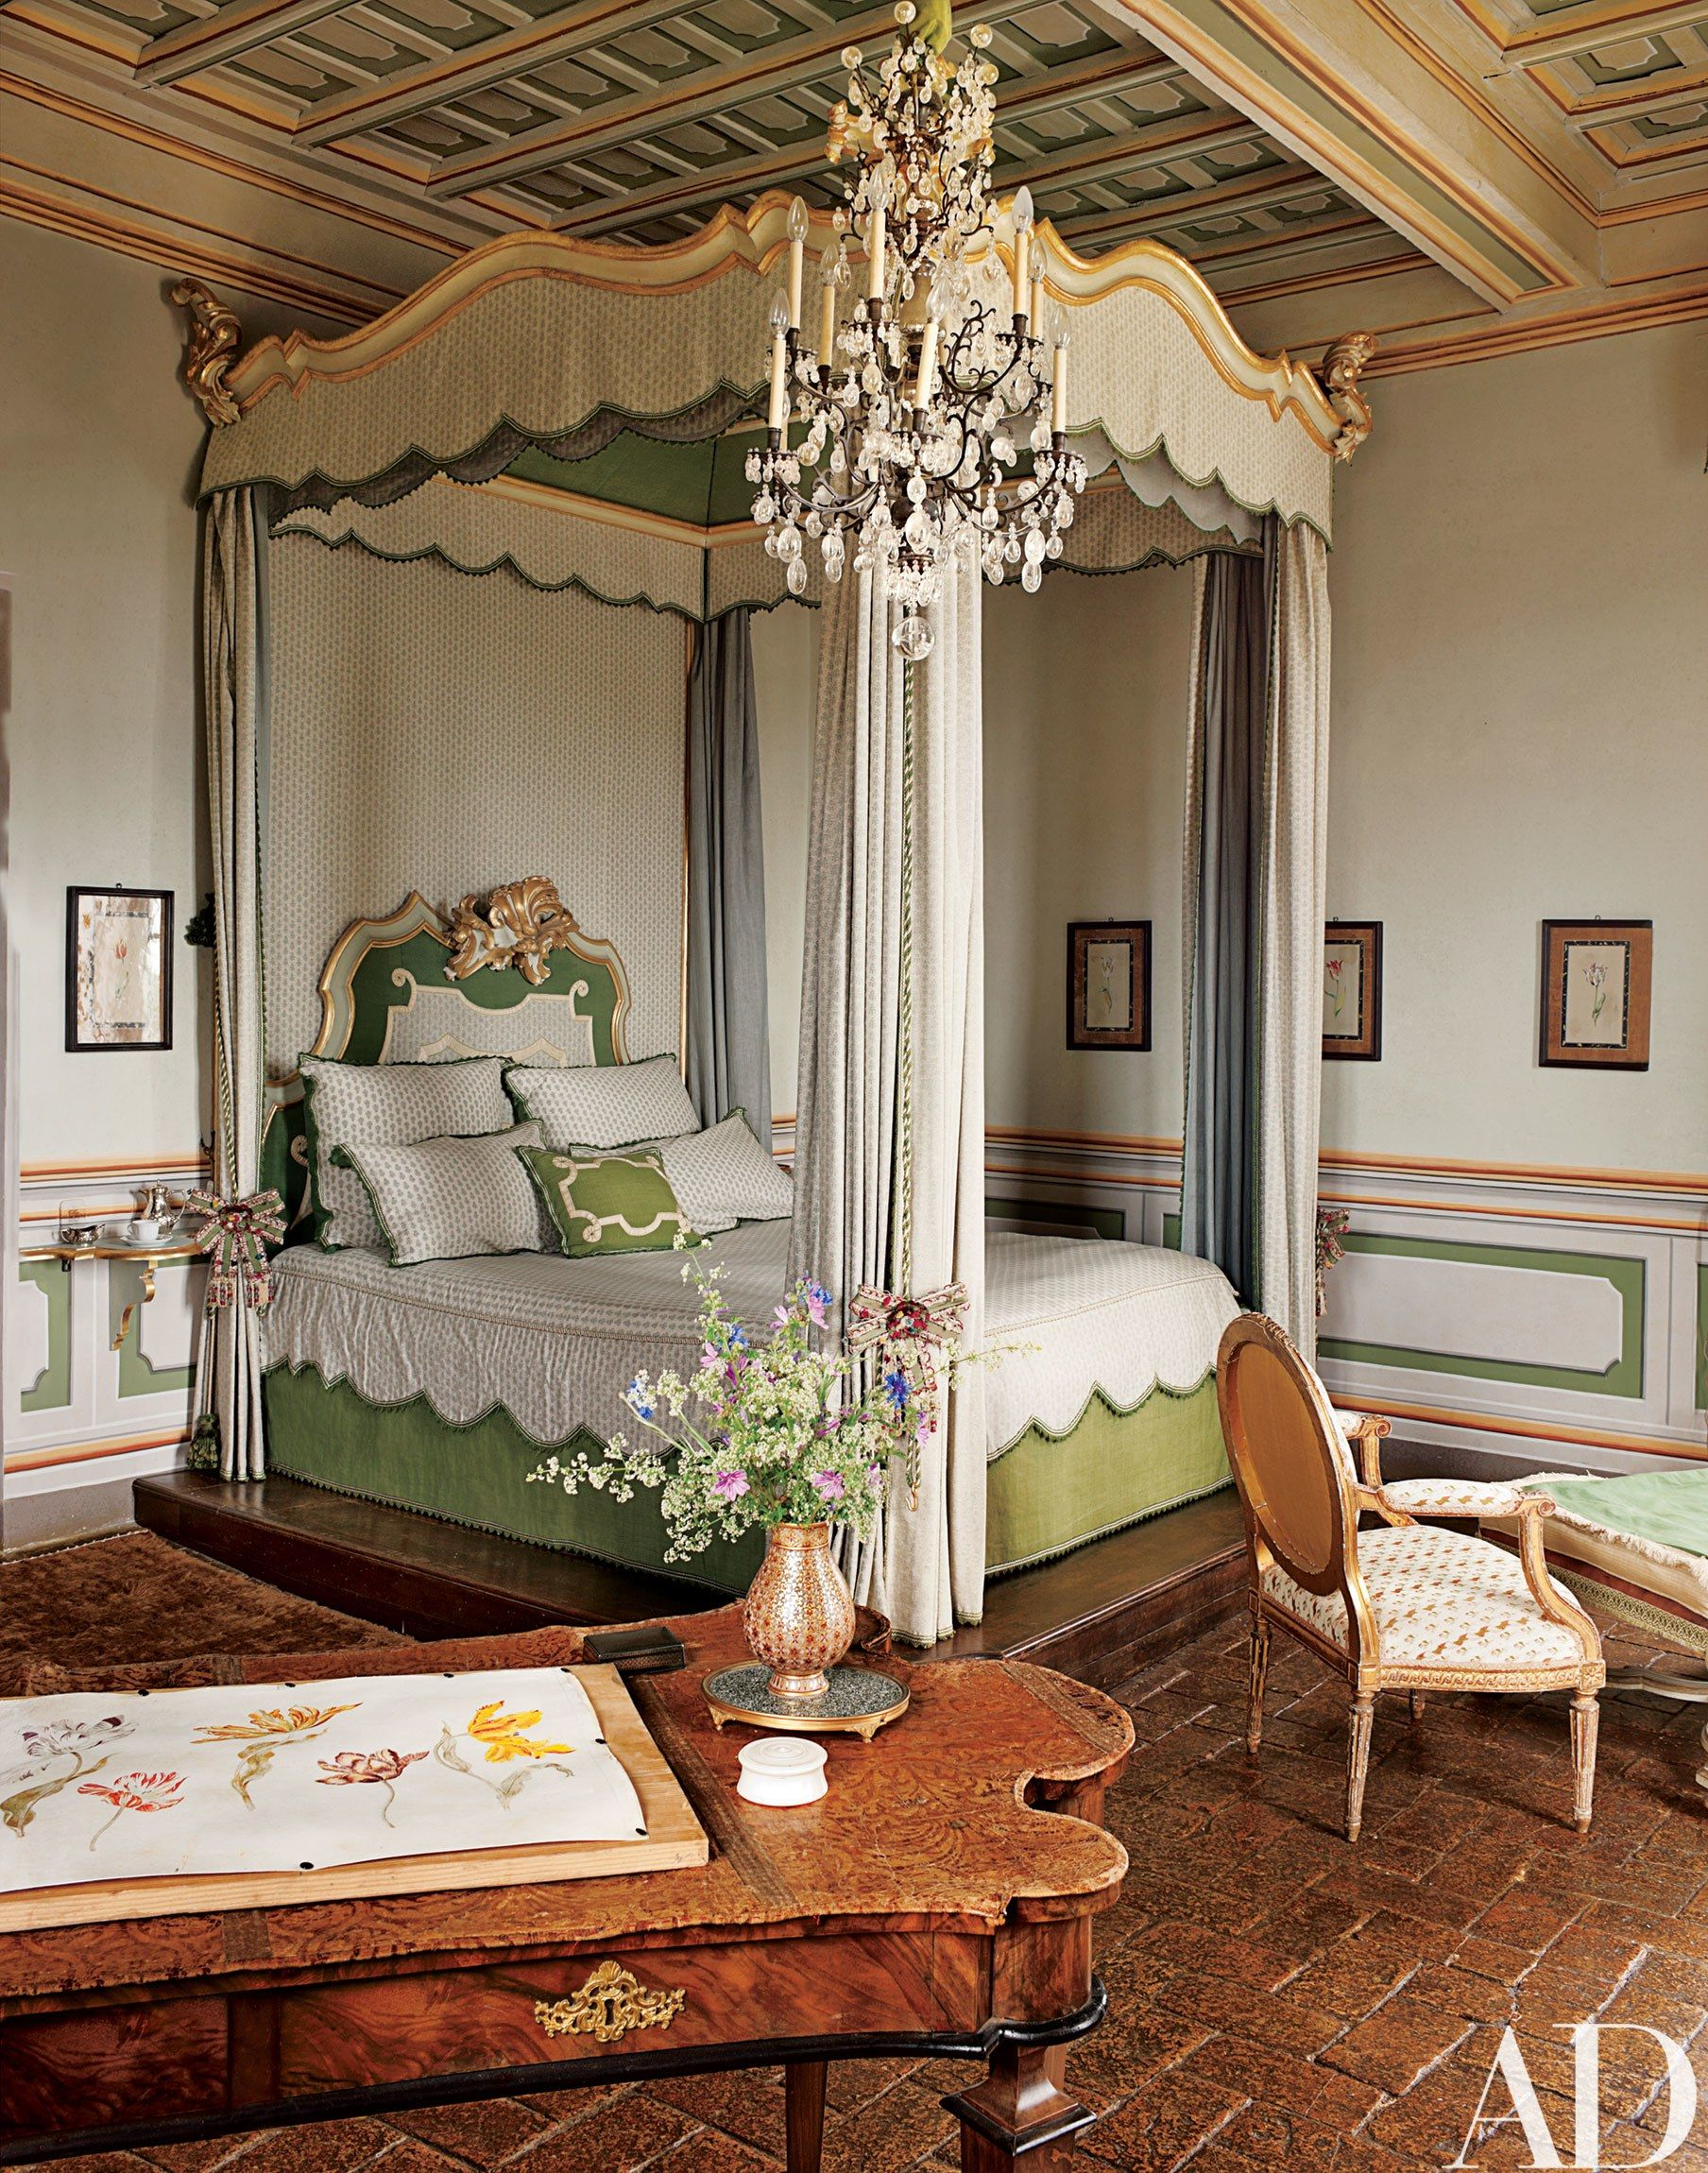 Chippendale Schlafzimmer Count Raniero Gnoli S Well Curated 17th Centuty Home In Italy My